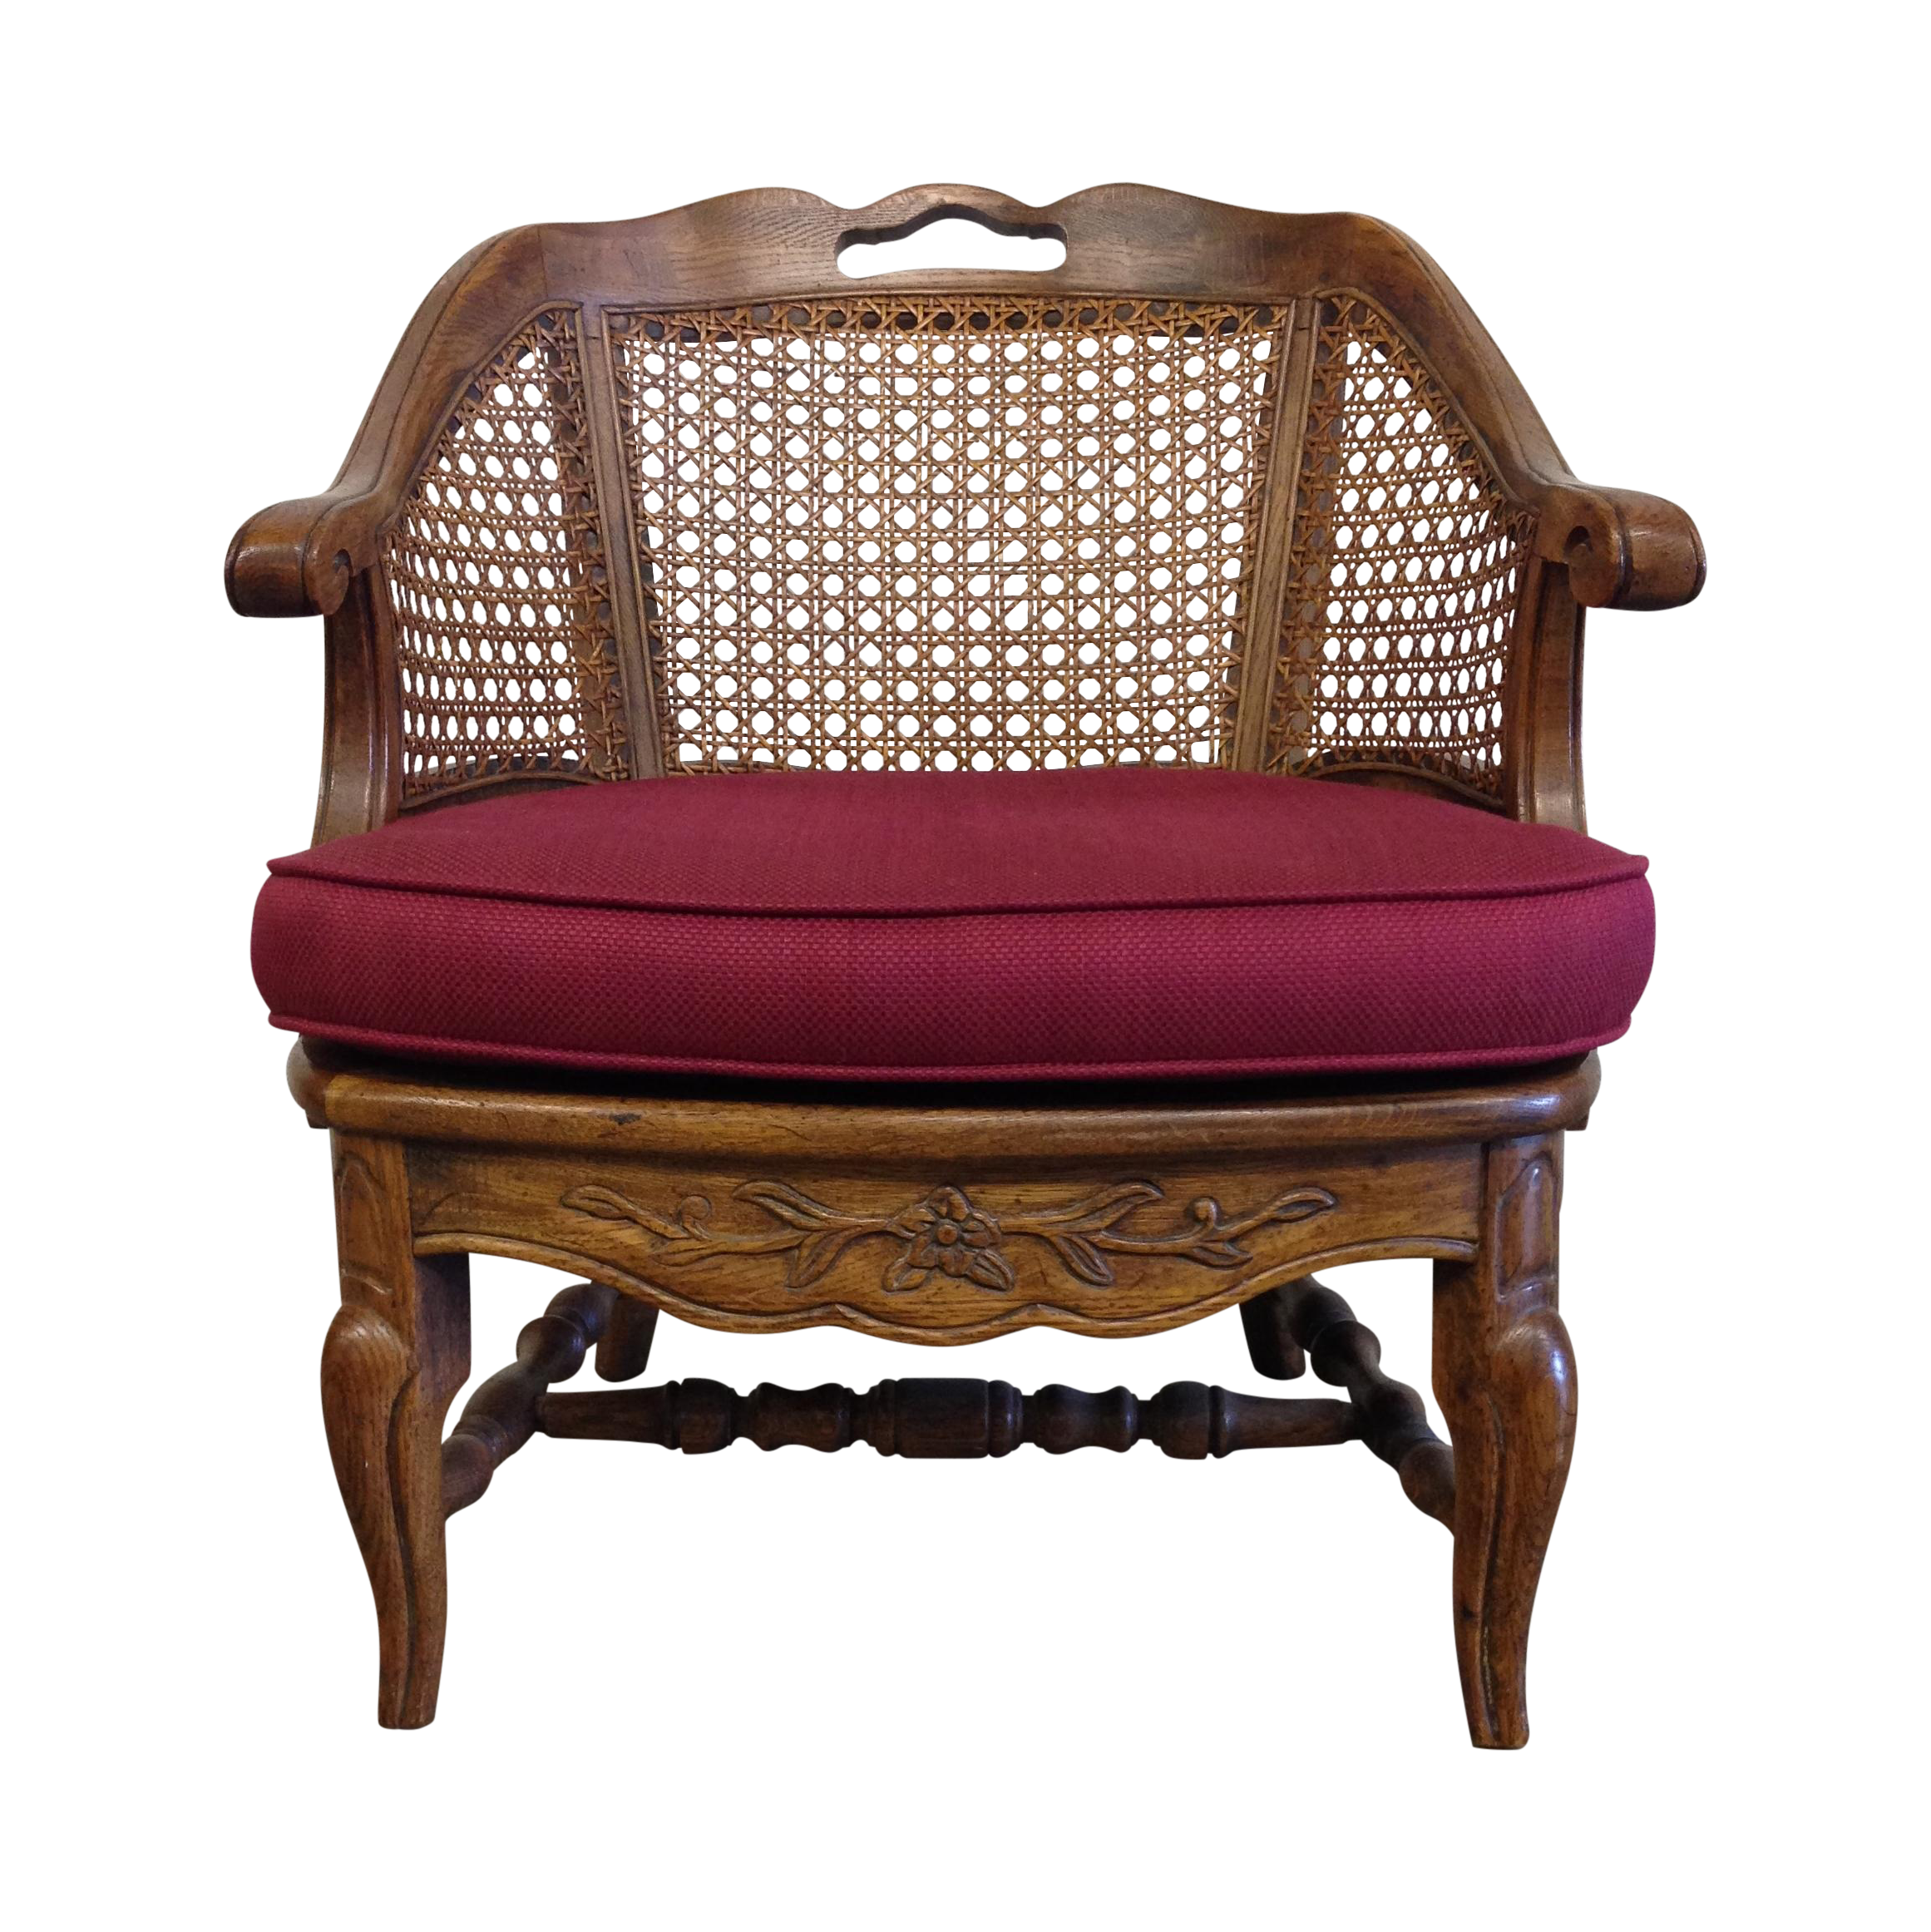 French Provincial Cane Back Barrel Chair Chairish